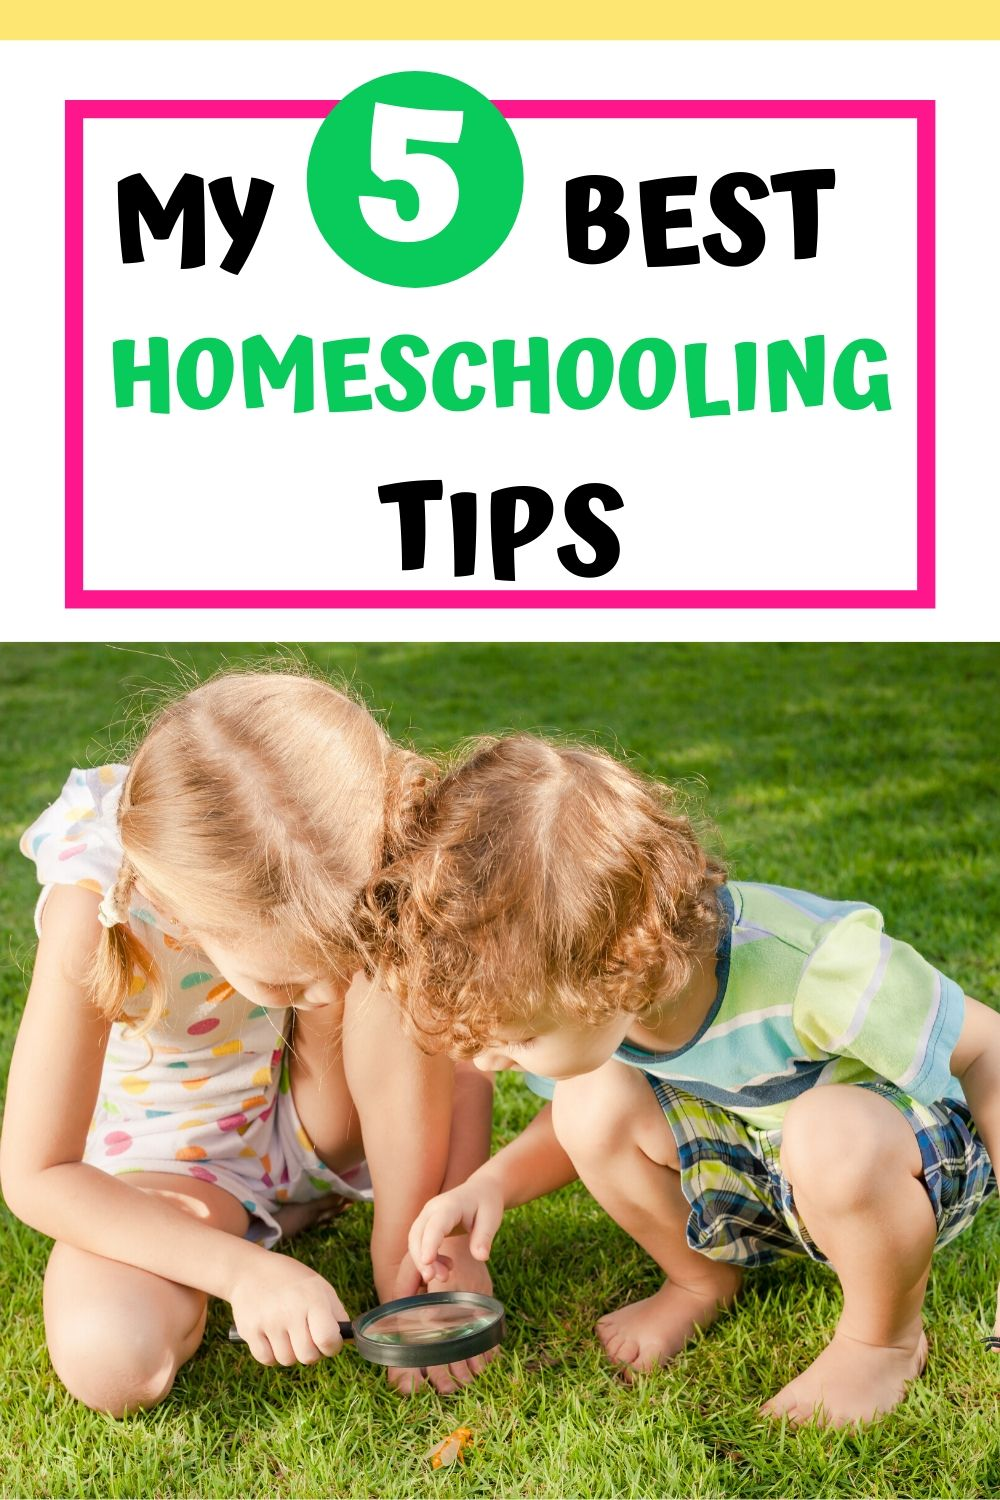 Best homeschooling tips